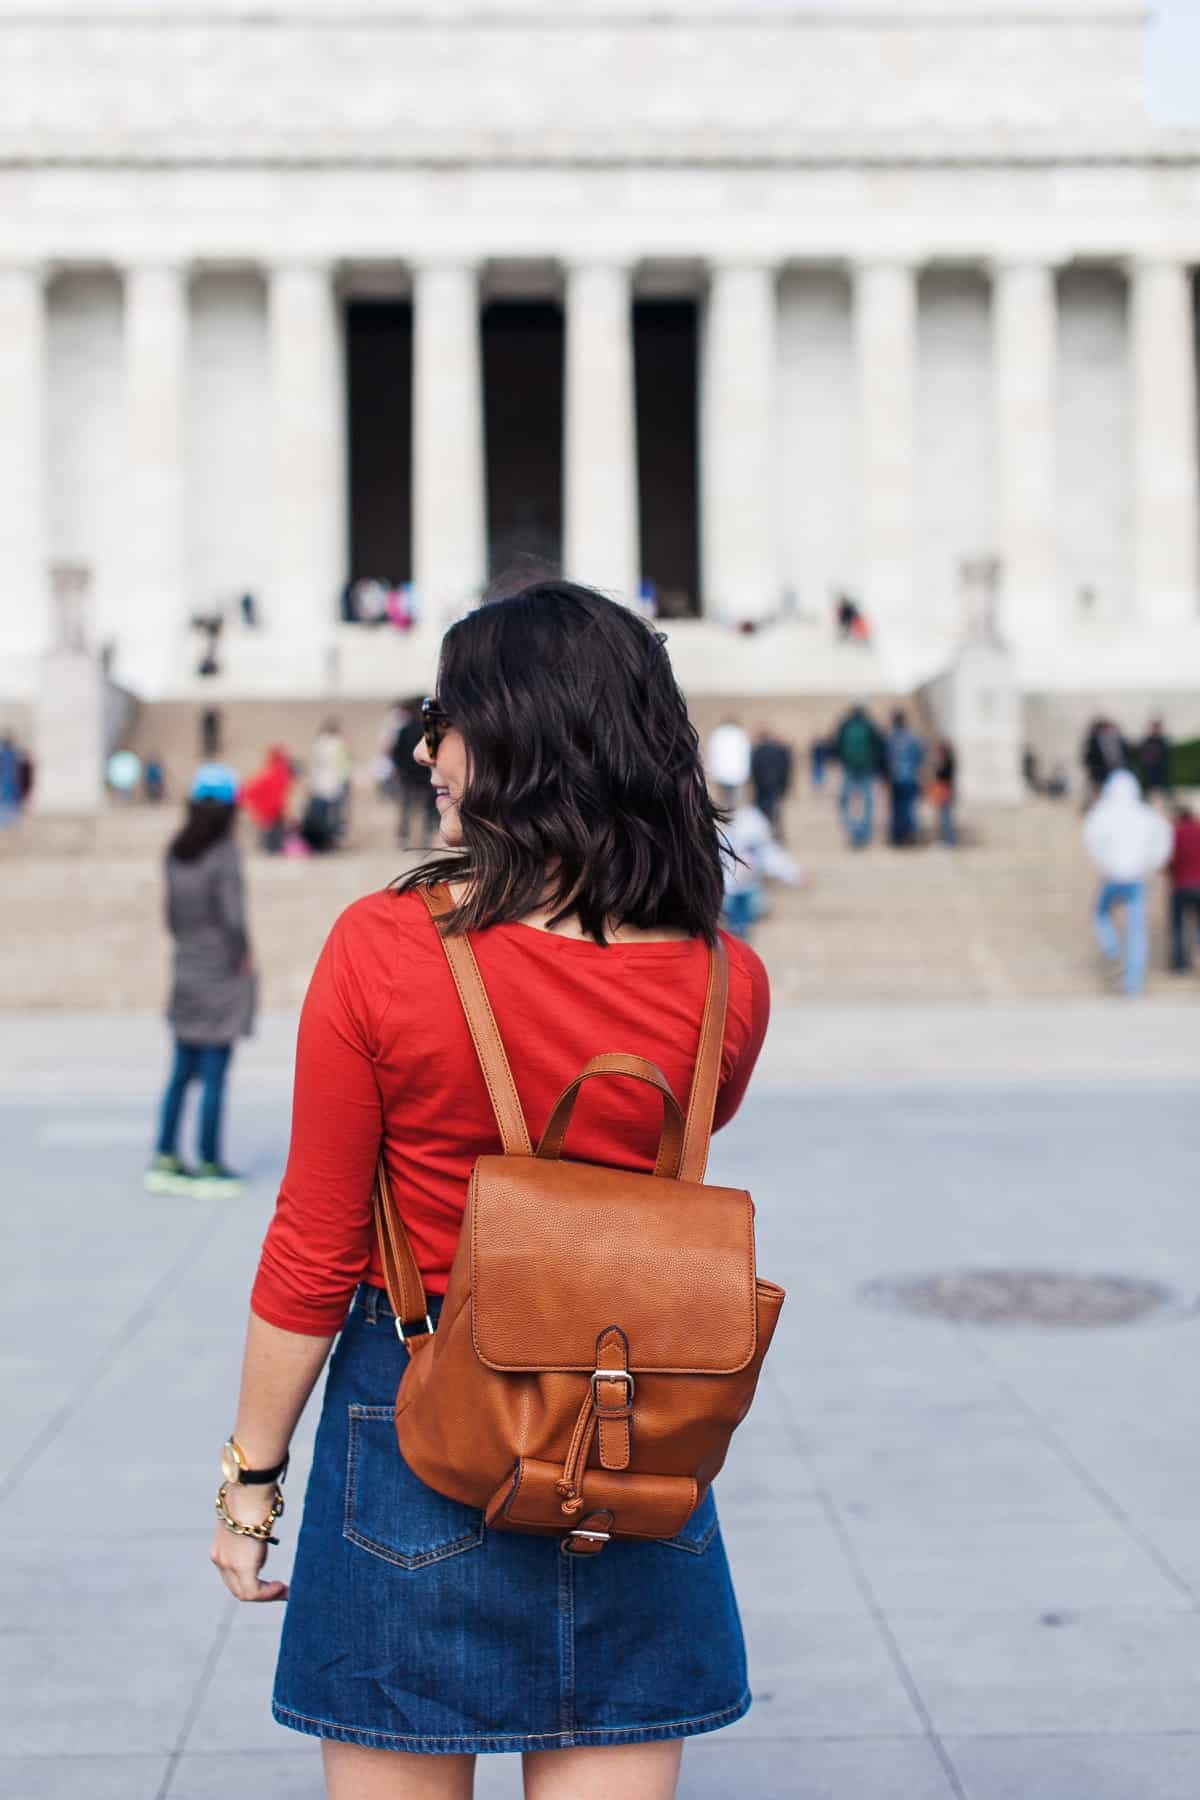 travel outfit ideas - how to travel while still looking cute - My Style Vita @mystylevita - 5